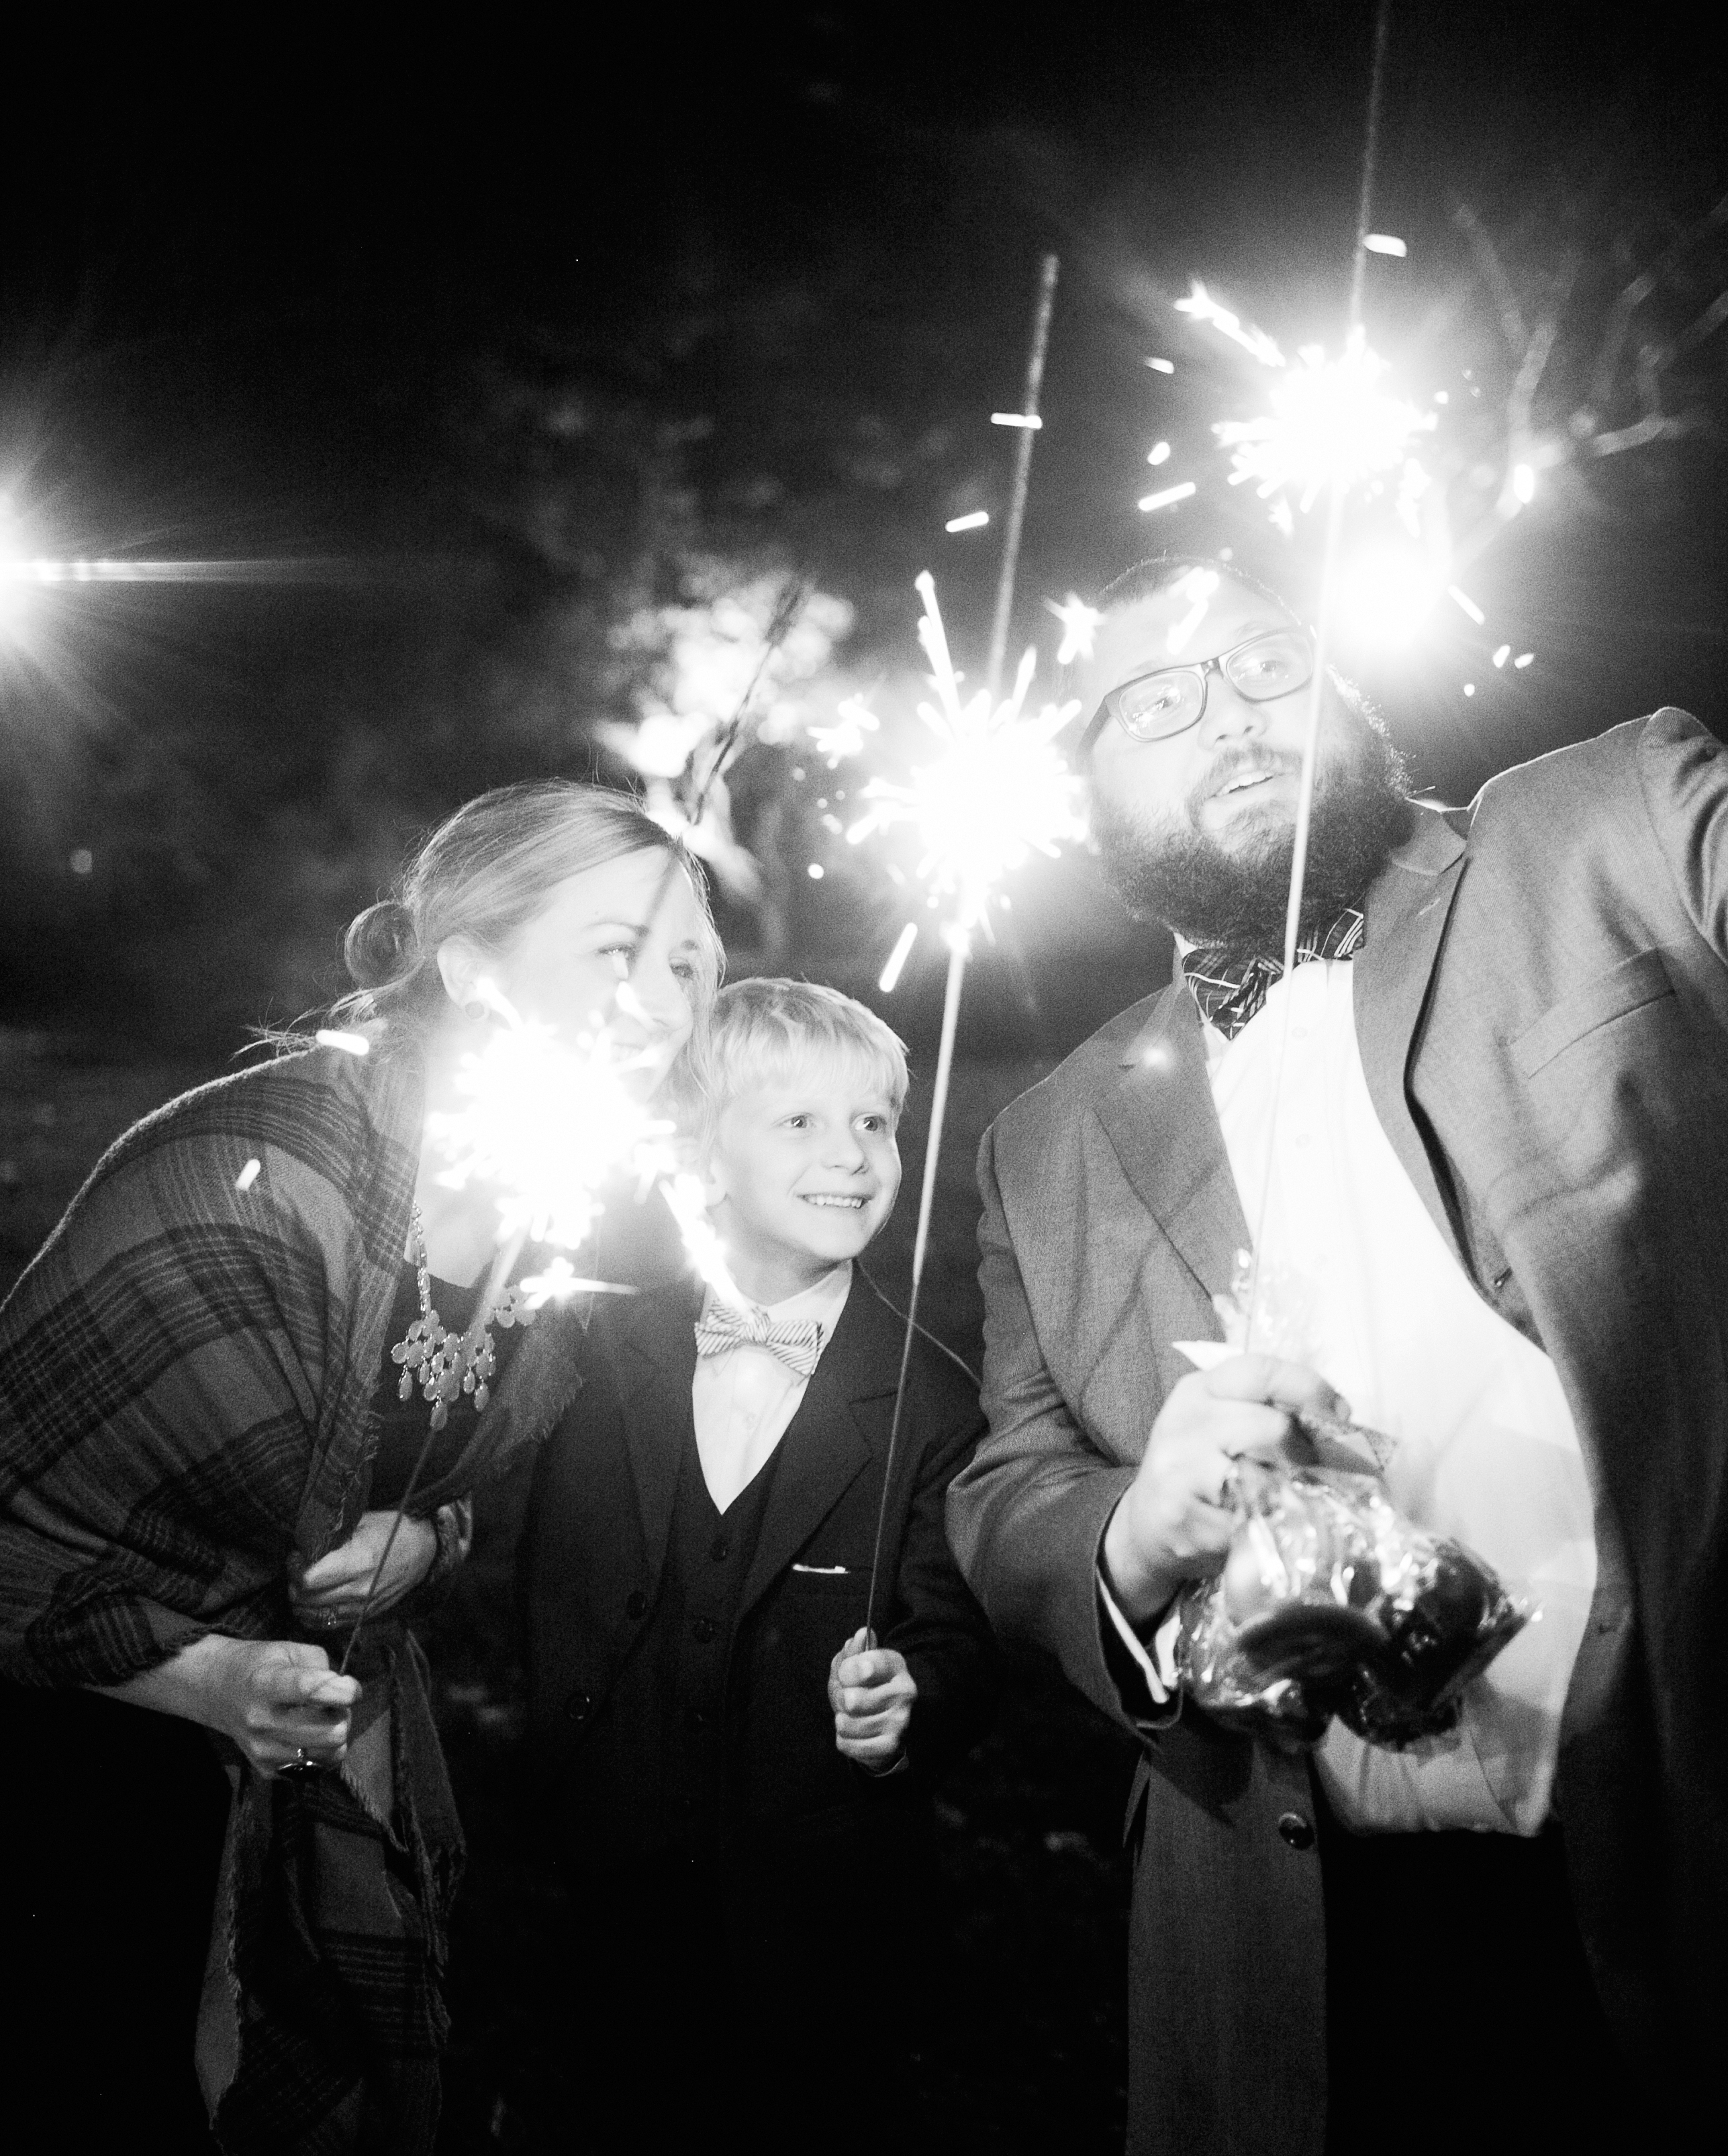 brittany-andrew-wedding-sparklers-106-s112067-0715.jpg